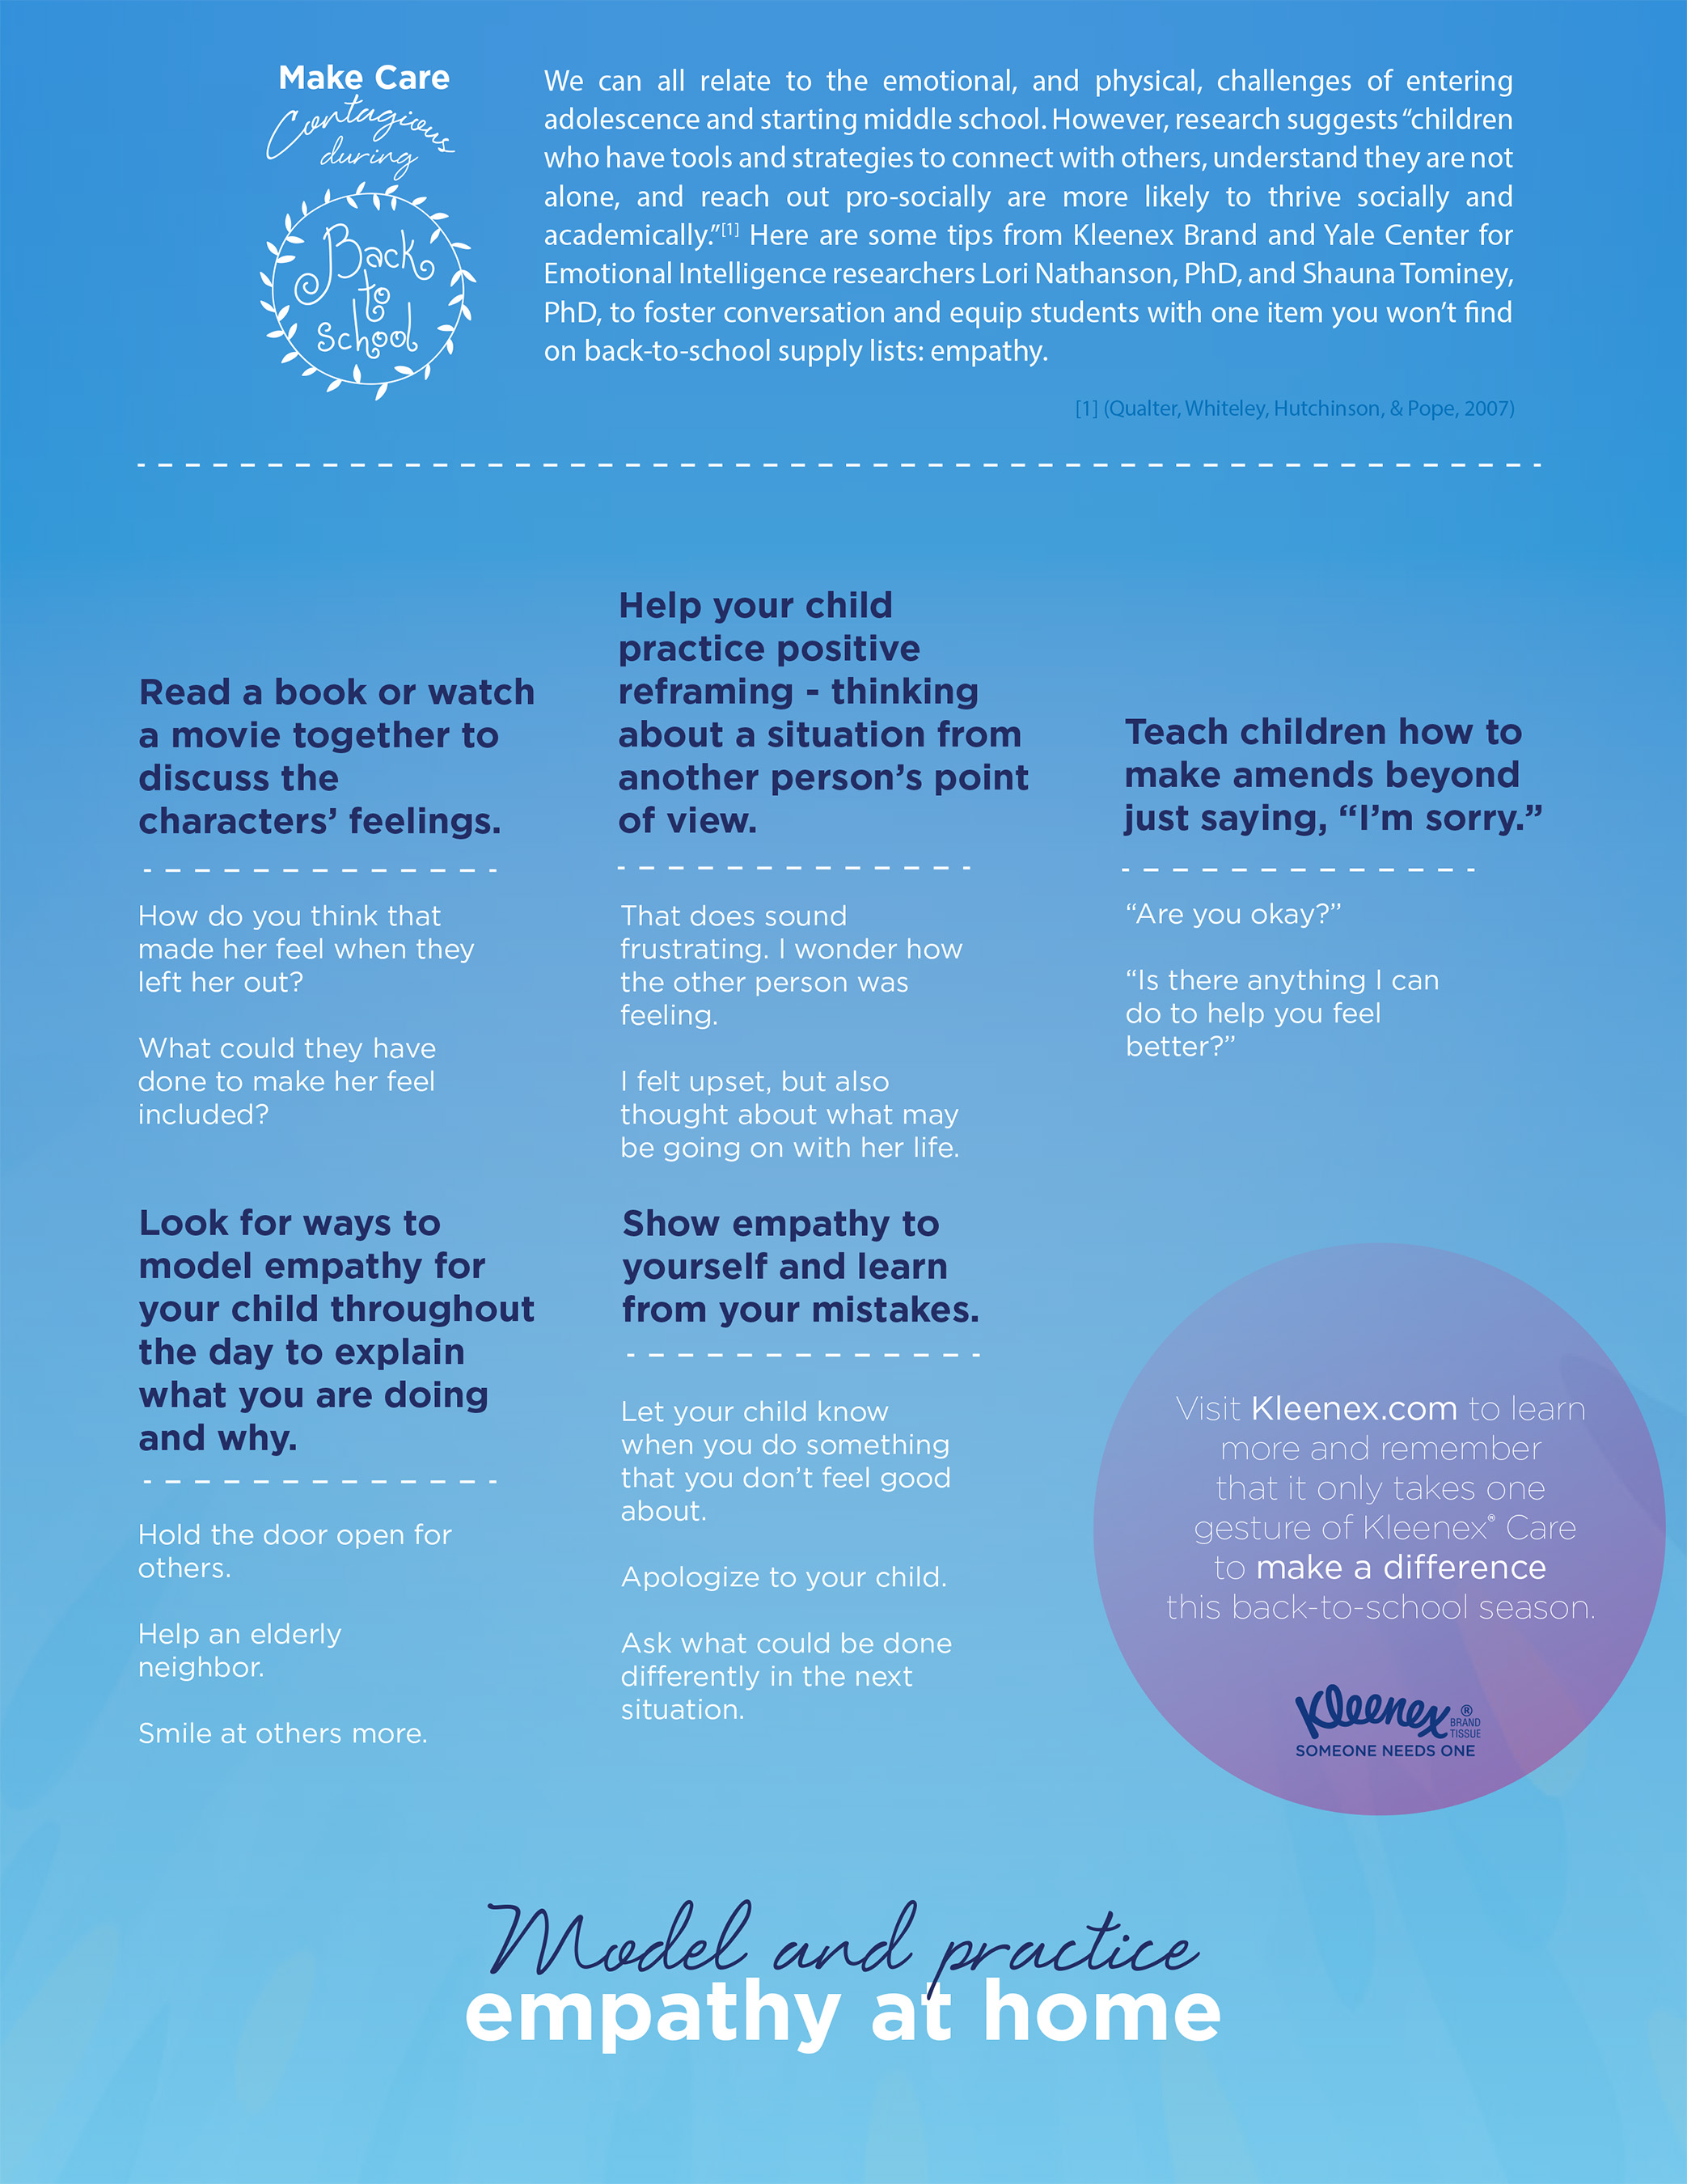 Kleenex® brand and Yale researchers share tips to help model and practice empathy at home.